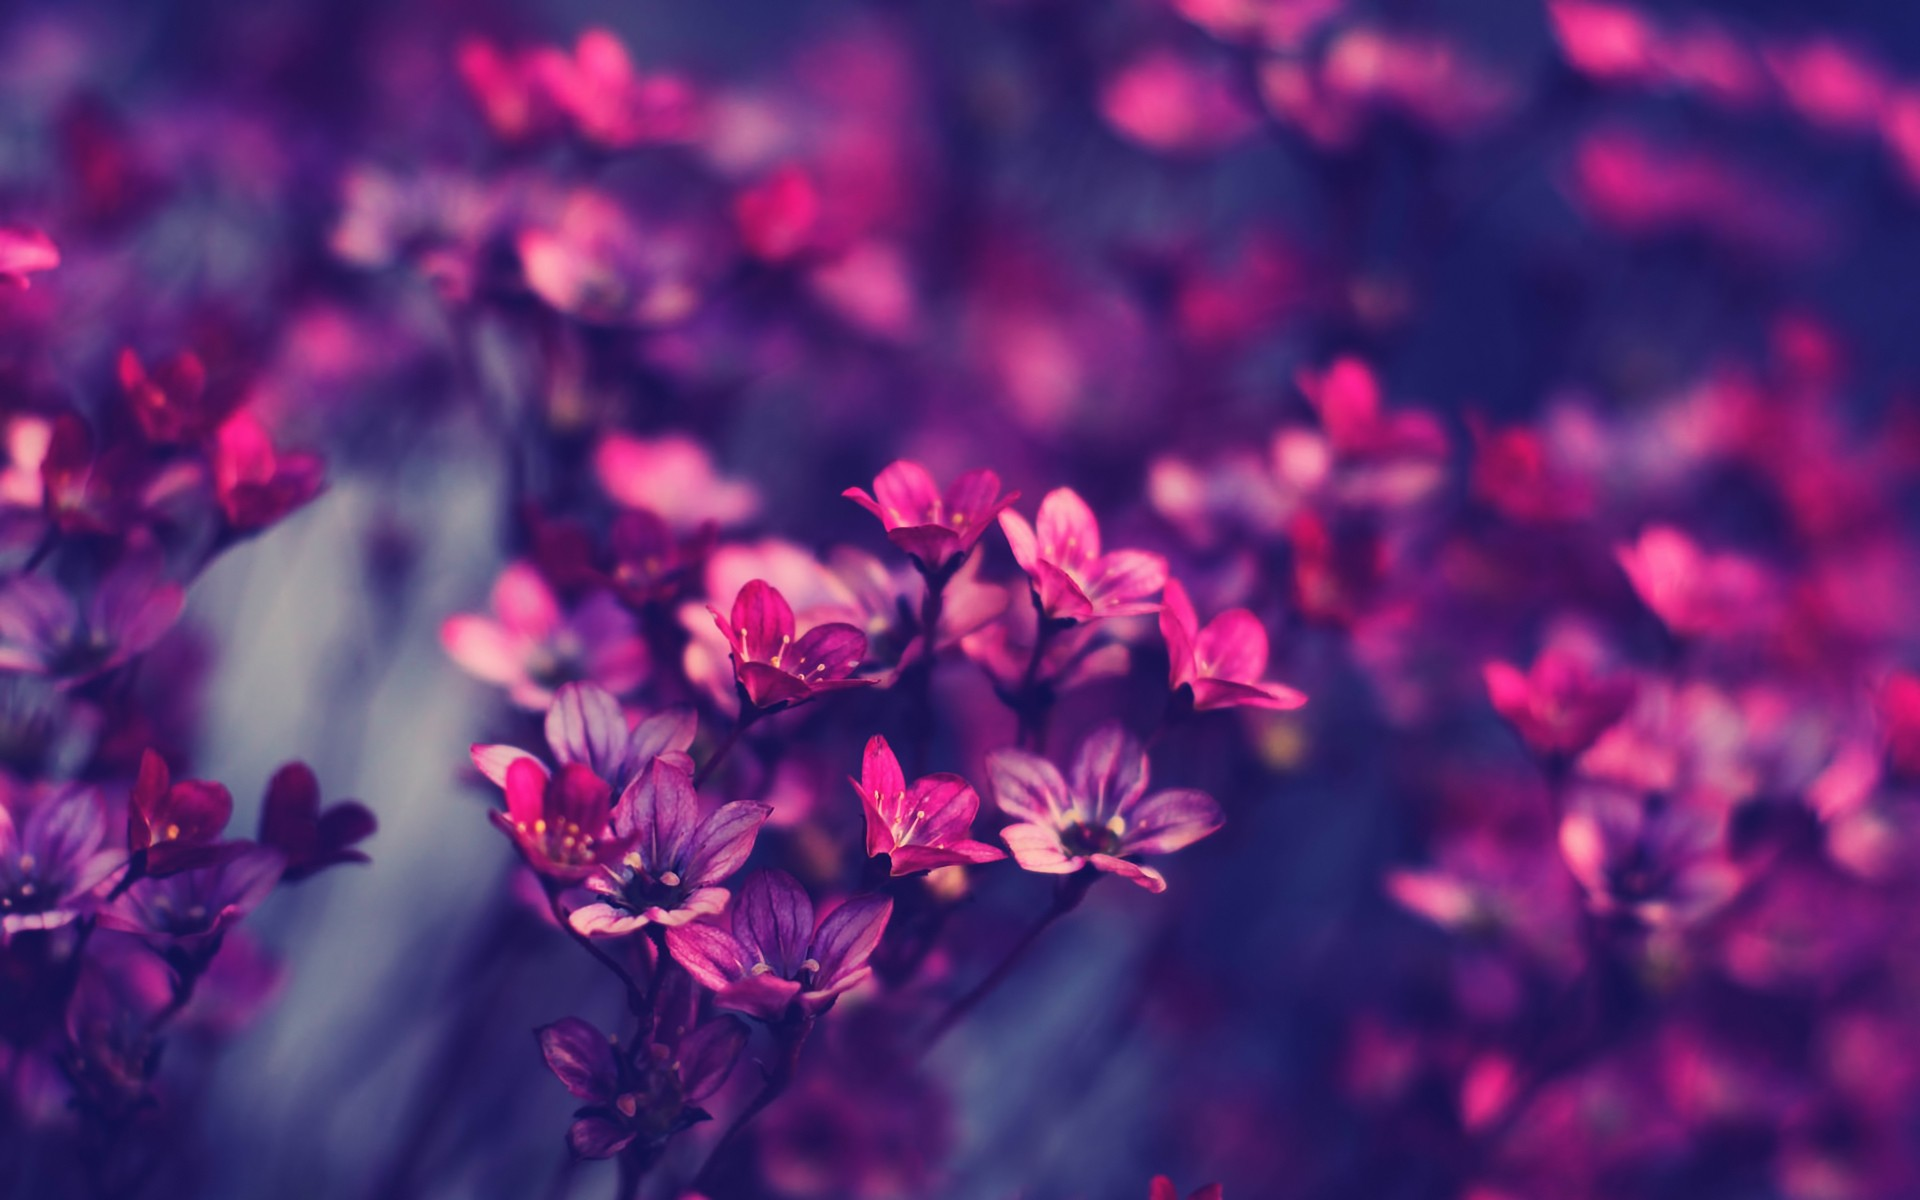 Flower Aesthetic Photography Desktop Wallpaper